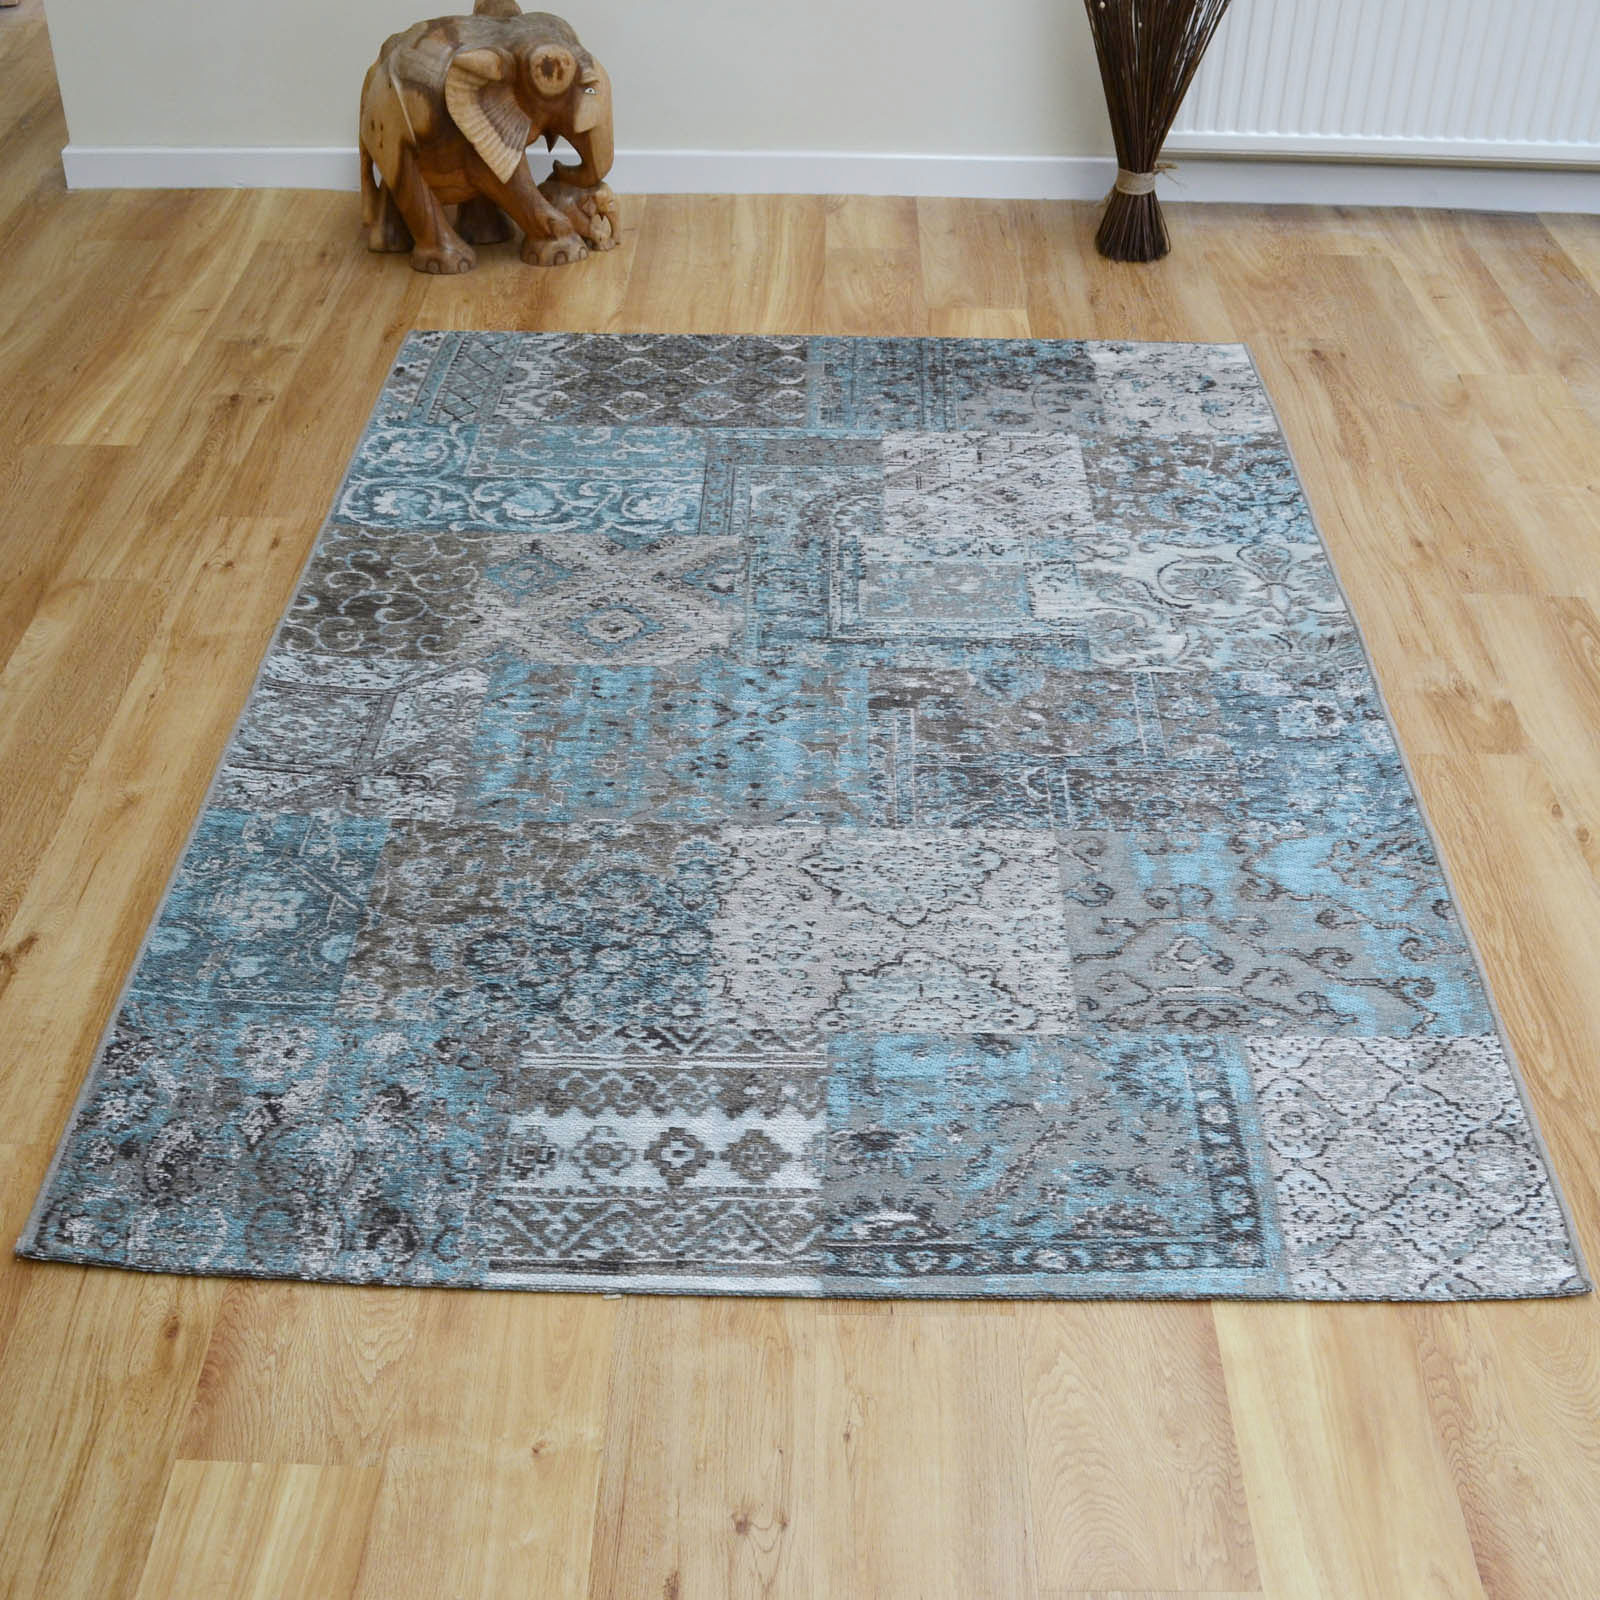 Capri Rugs 91290 5007 in Blue and Grey